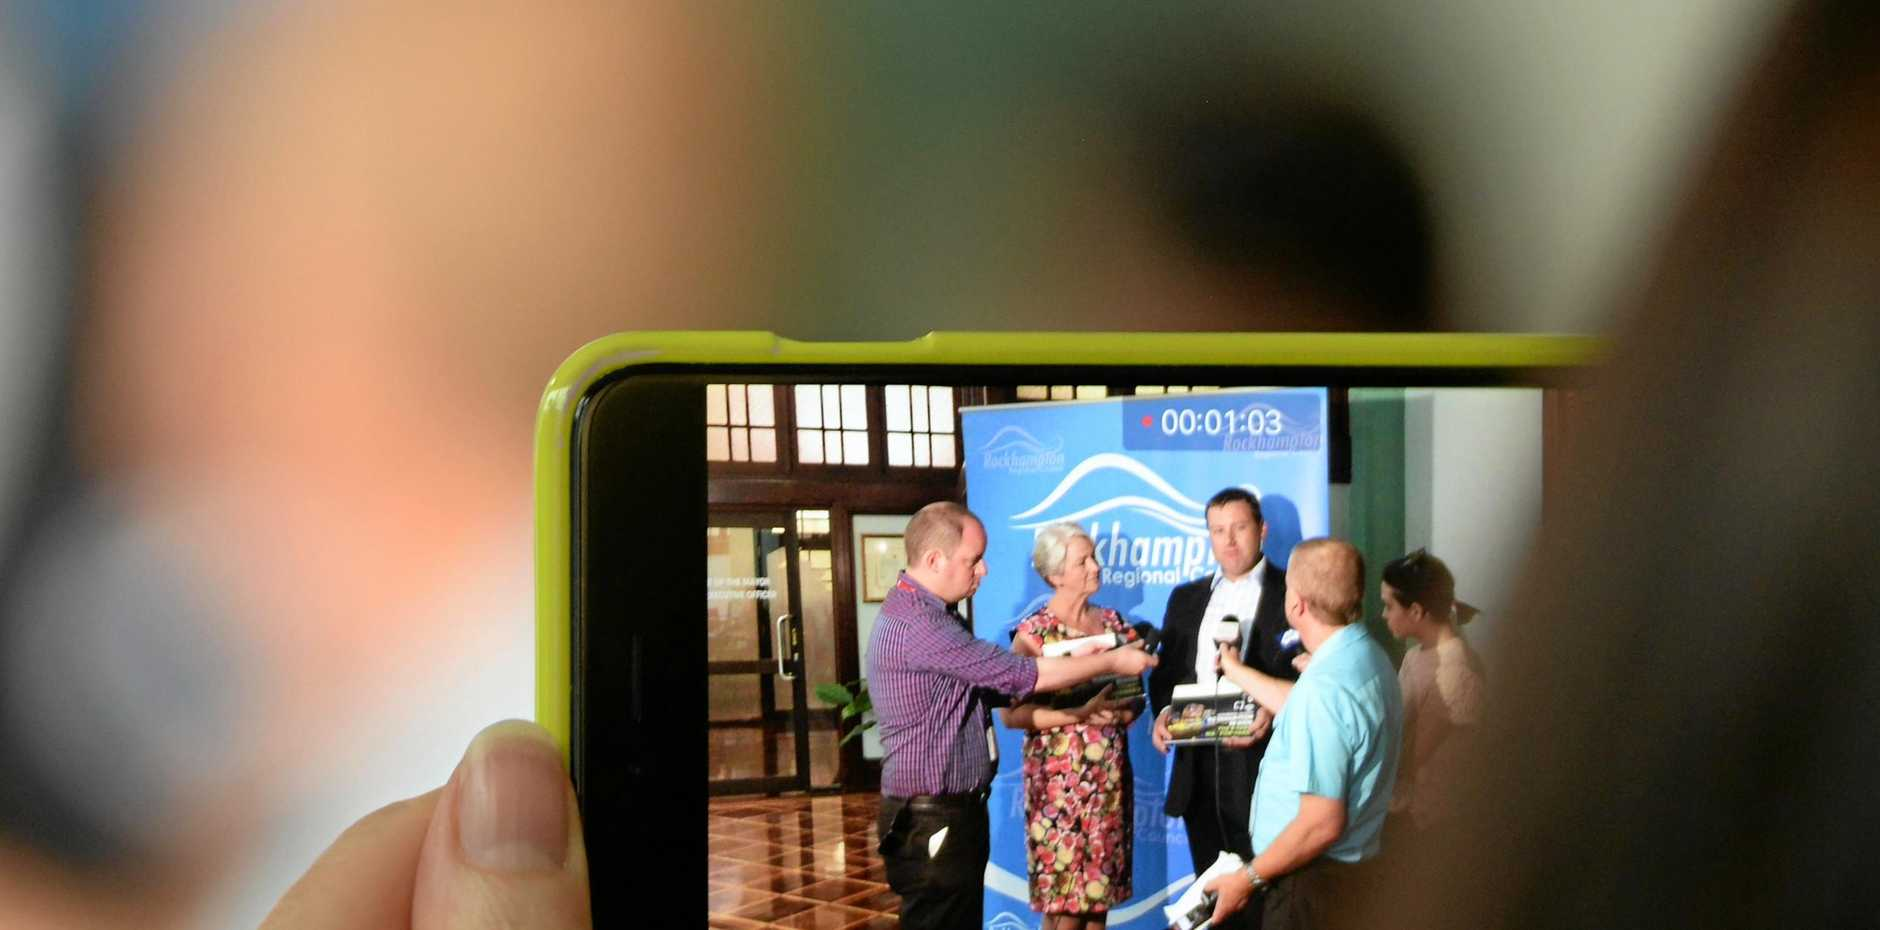 Rockhampton Mayor Margaret Strelow and Glentworth CEO Neil Glentworth at the press conference to announce